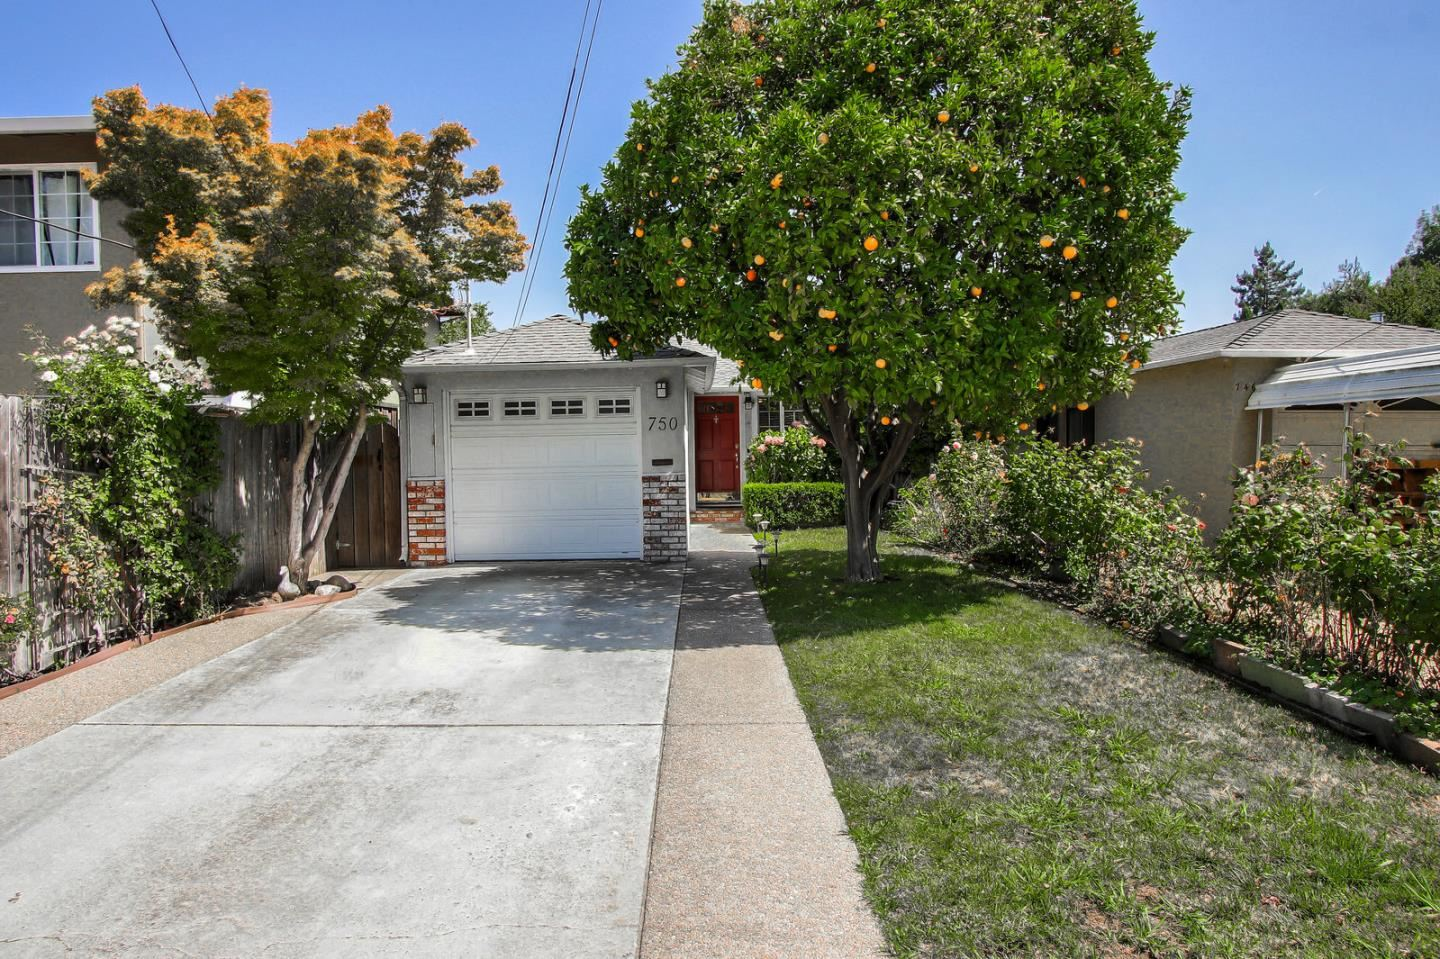 Photo for 750 6th AVE, REDWOOD CITY, CA 94063 (MLS # ML81765779)